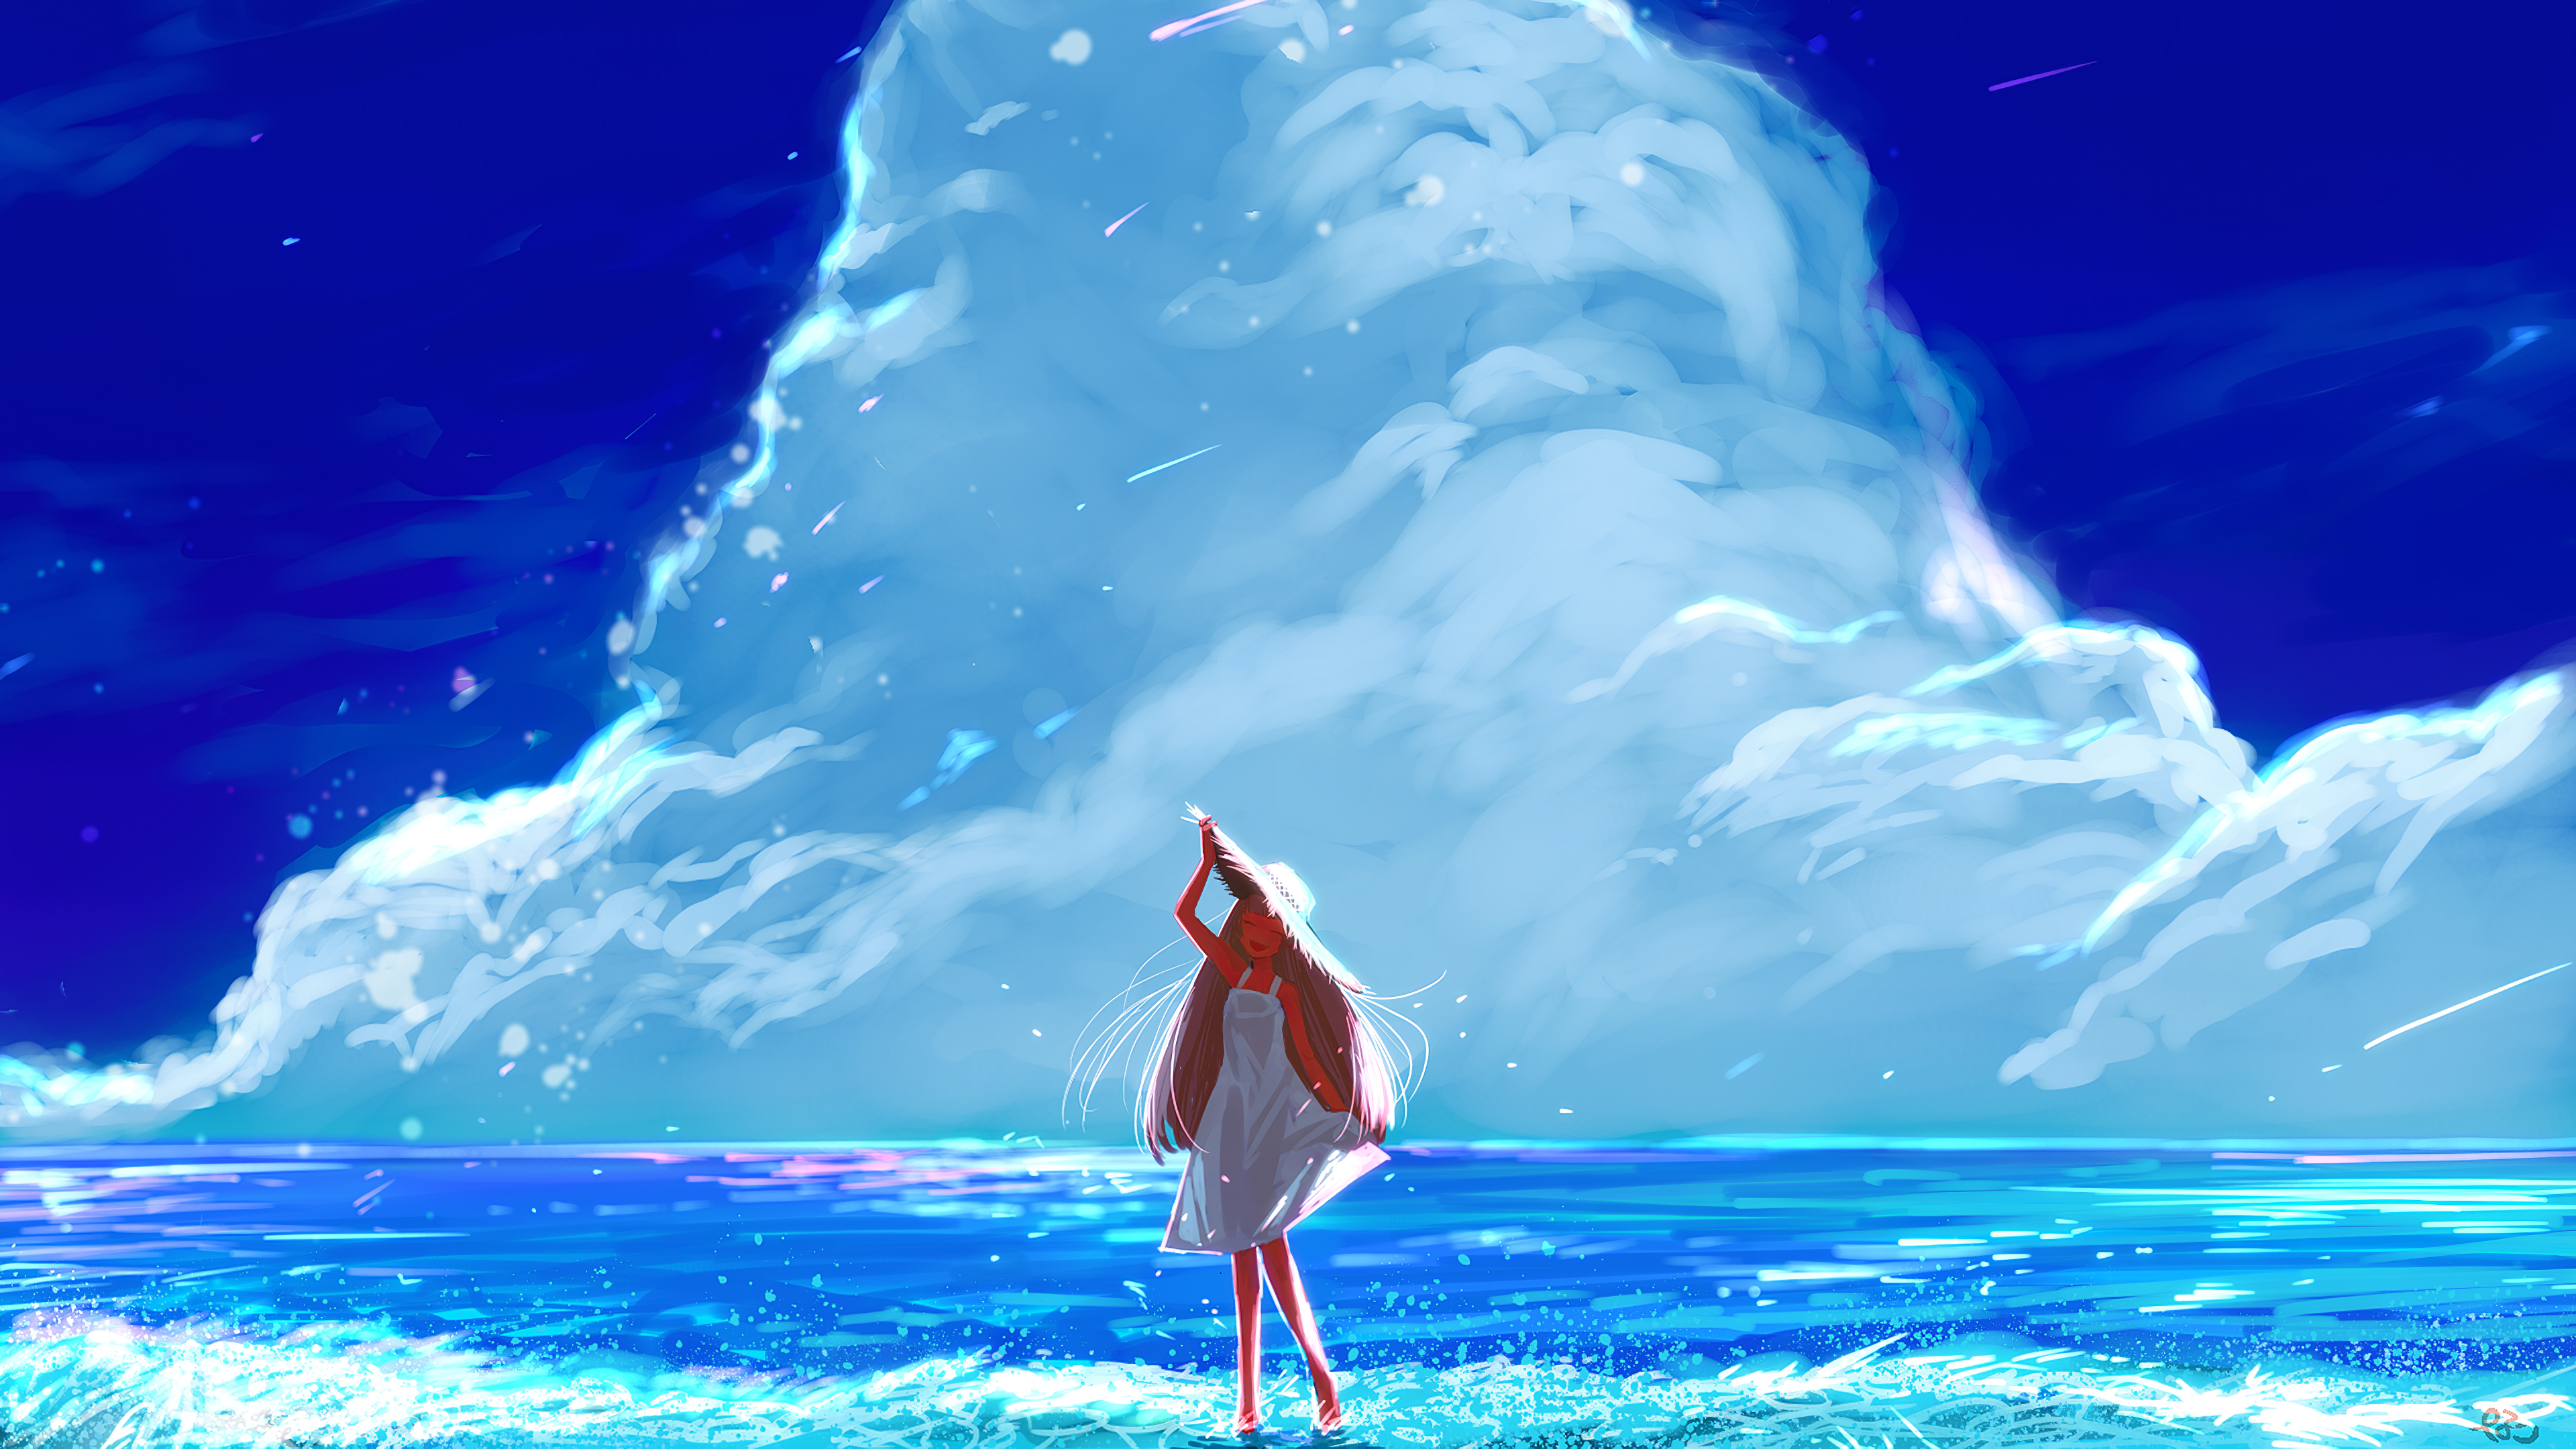 Anime Girl Beach Happy Long Hair Clouds 4k Hd Anime 4k Wallpapers Images Backgrounds Photos And Pictures